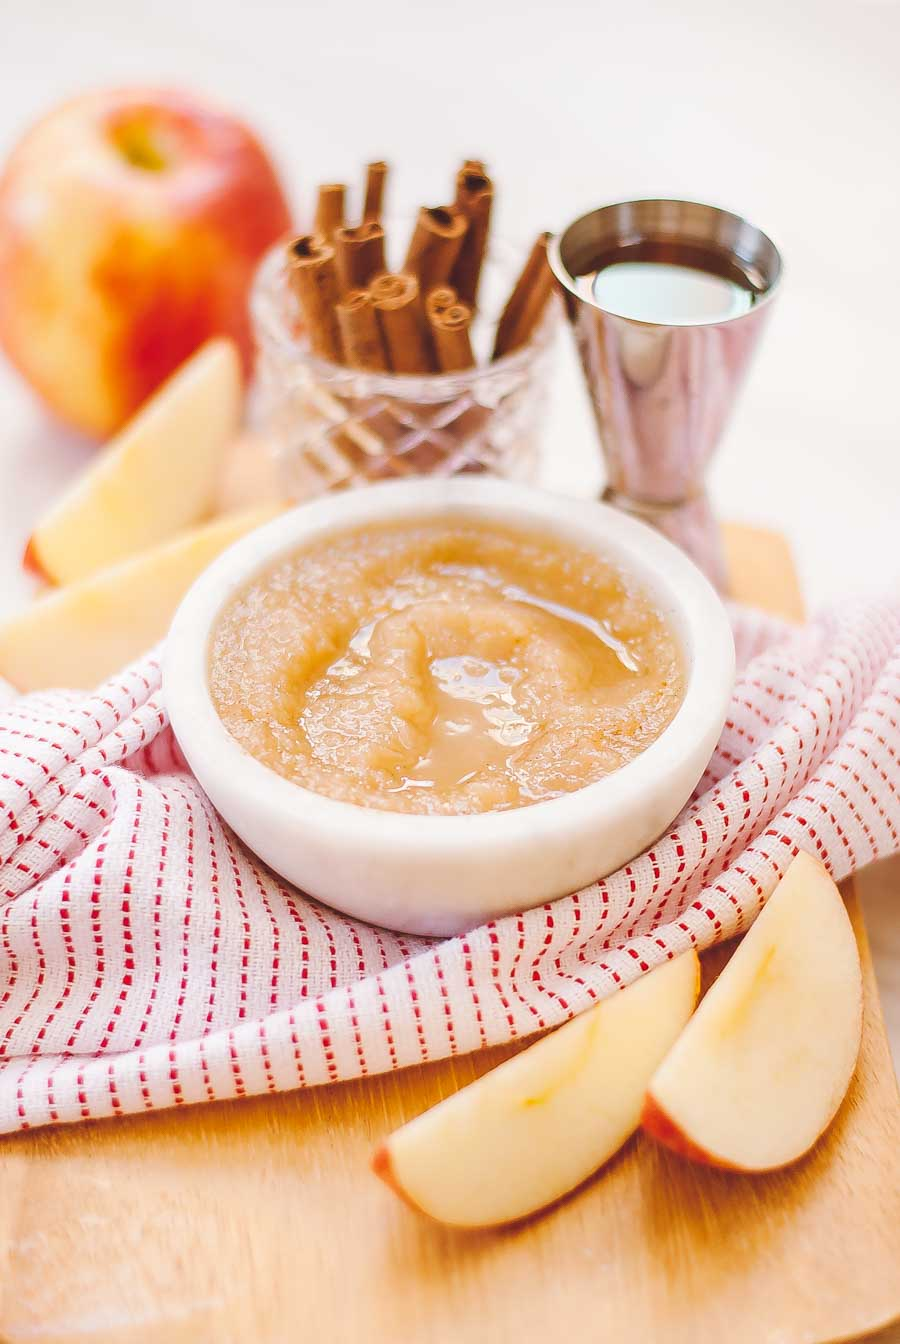 Rustic Bourbon spice applesauce - homemade in under an hour!